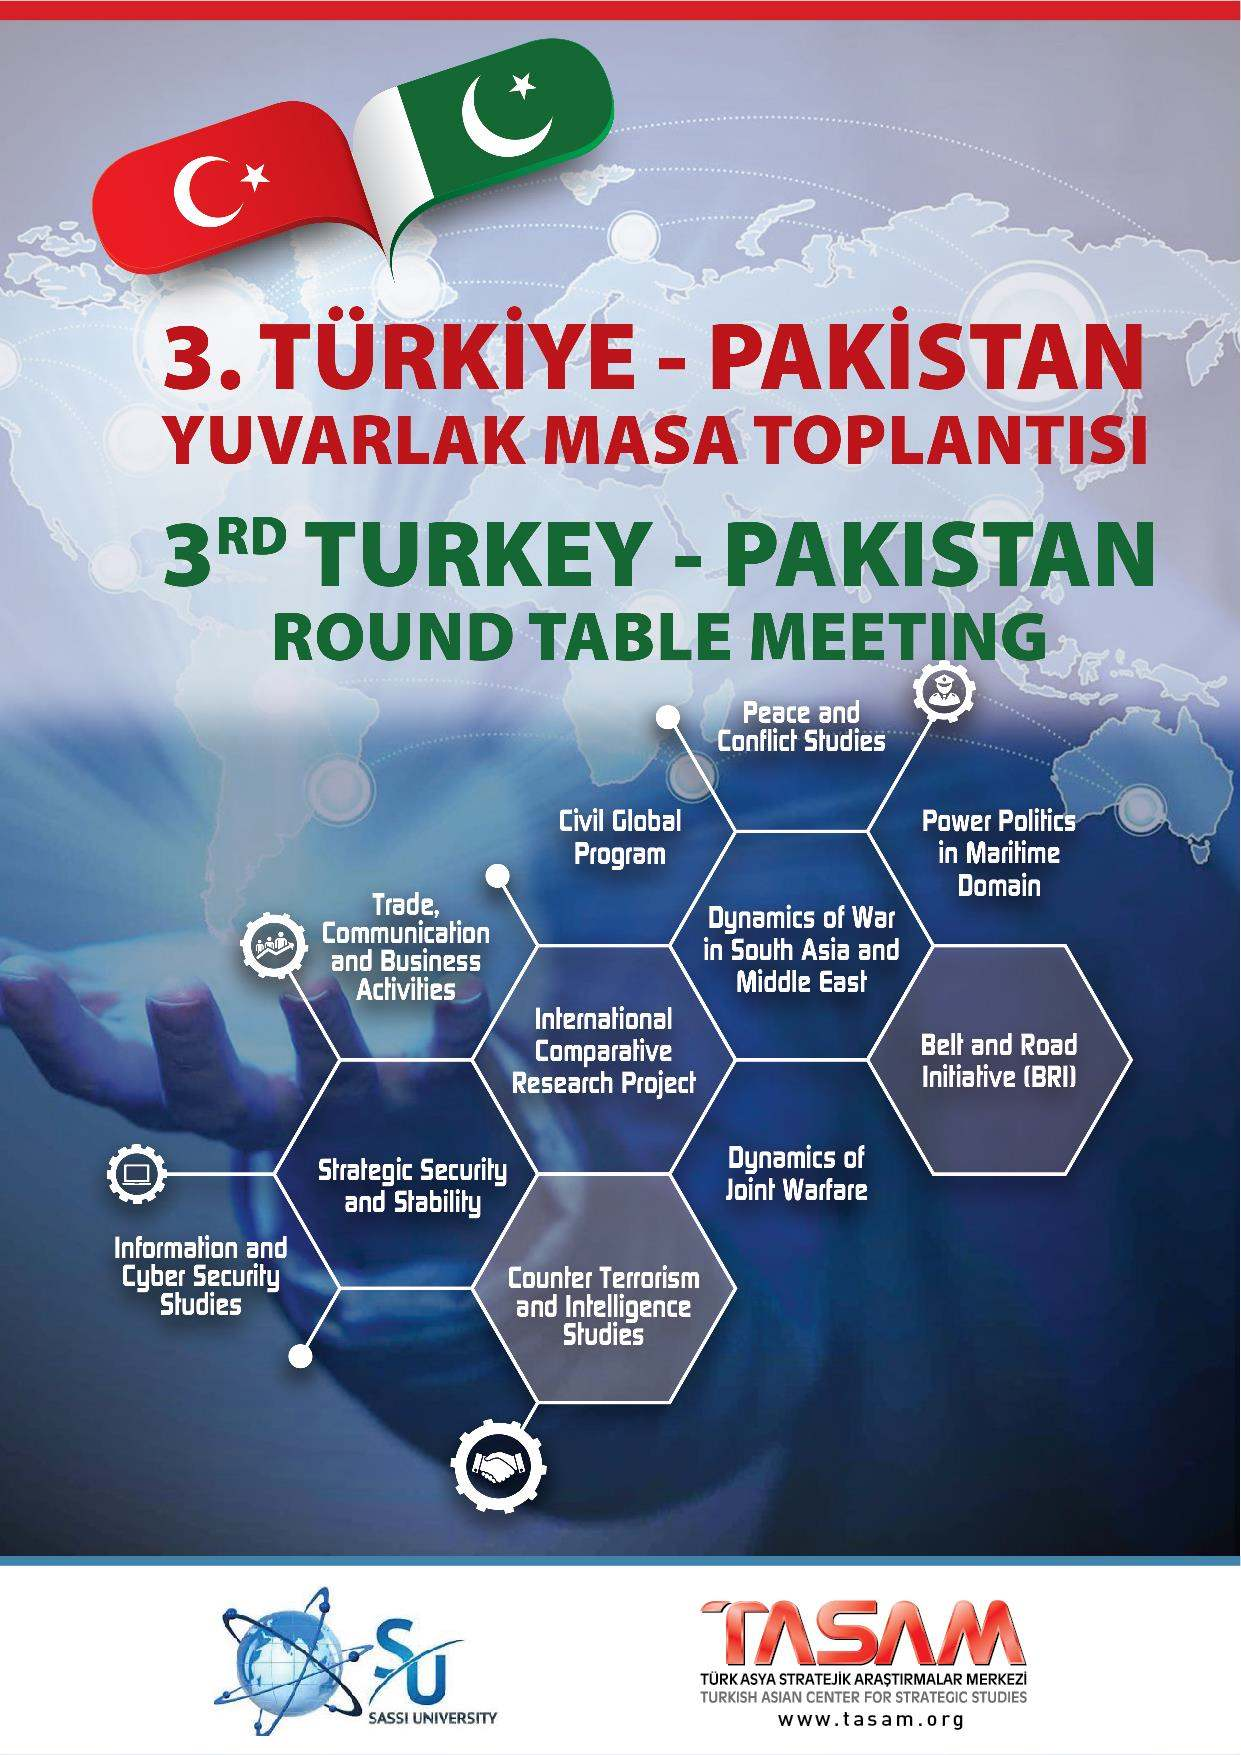 Turkey - Pakistan Round Table Meeting - 3